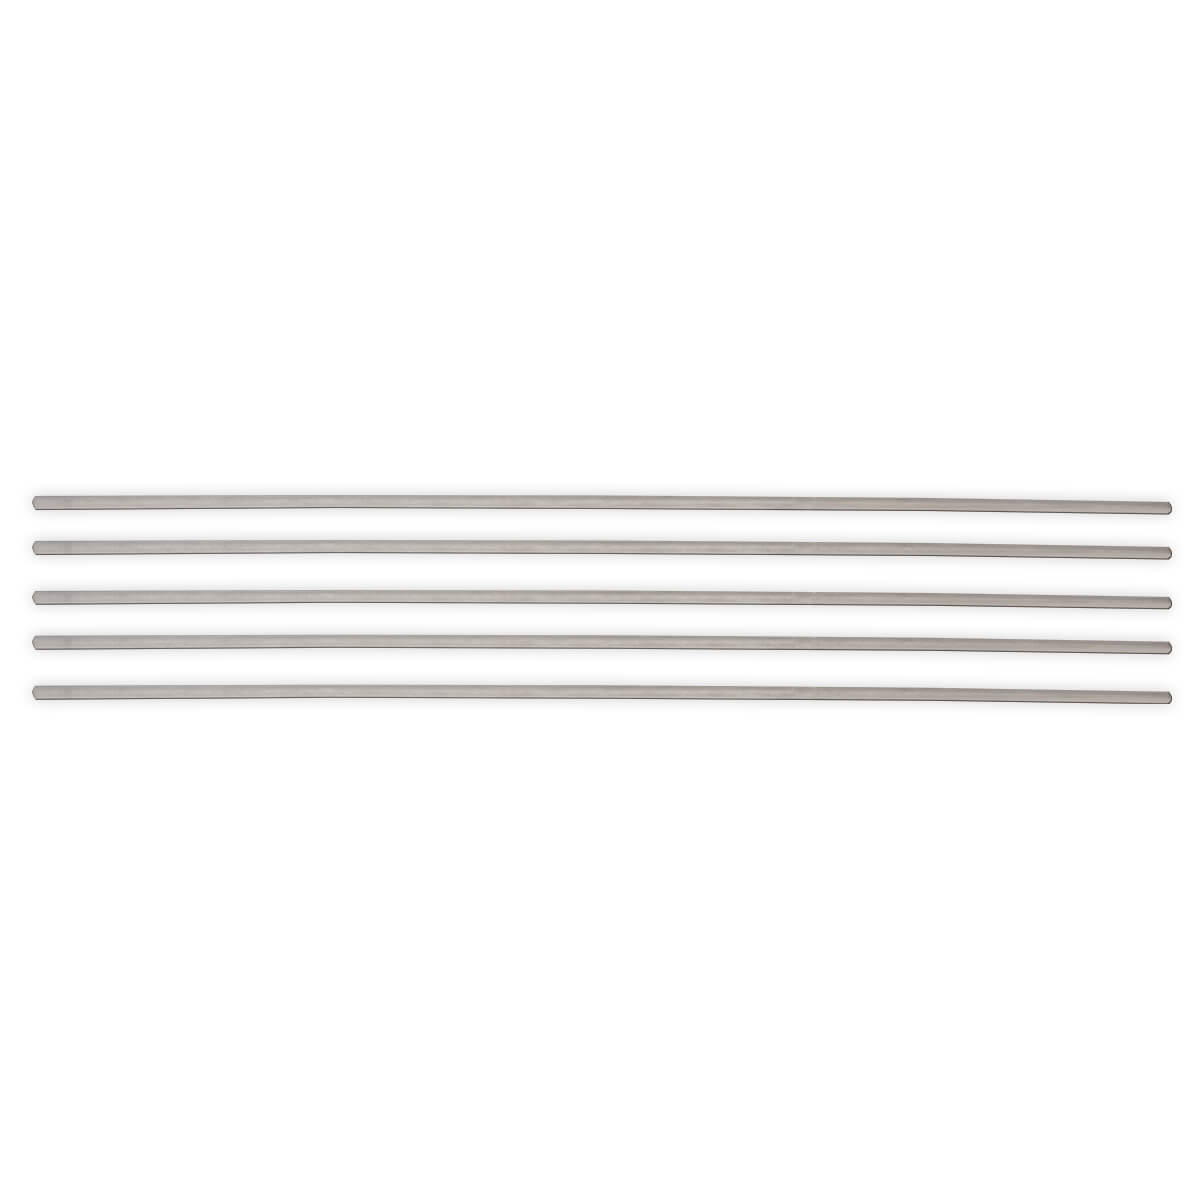 Replacement Blades (5 Pack)